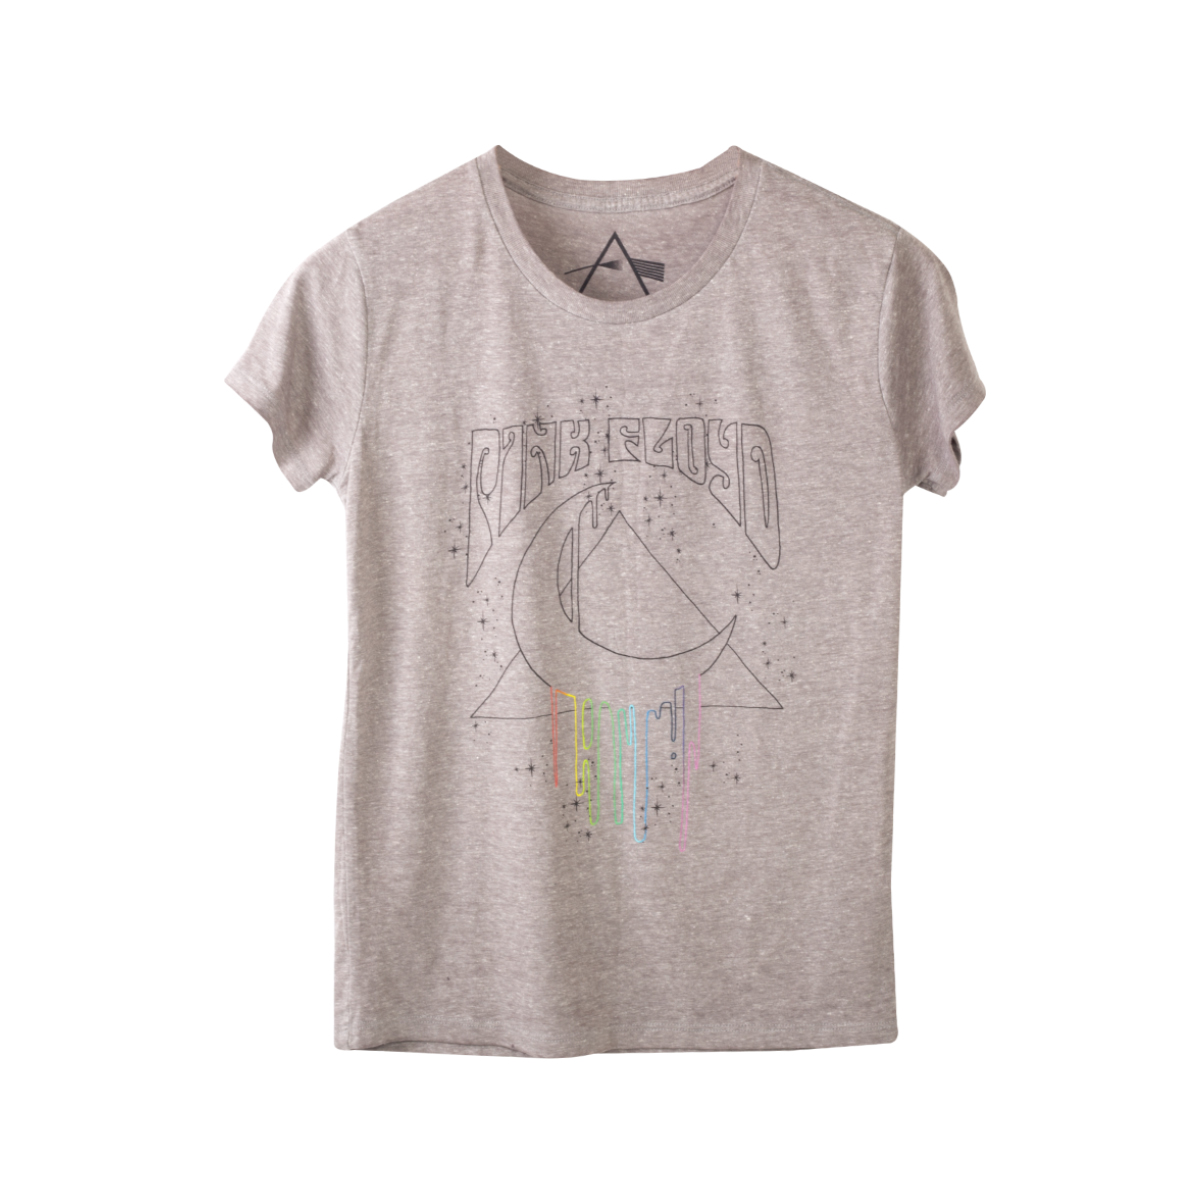 Pink Floyd Juniors Grey T-Shirt